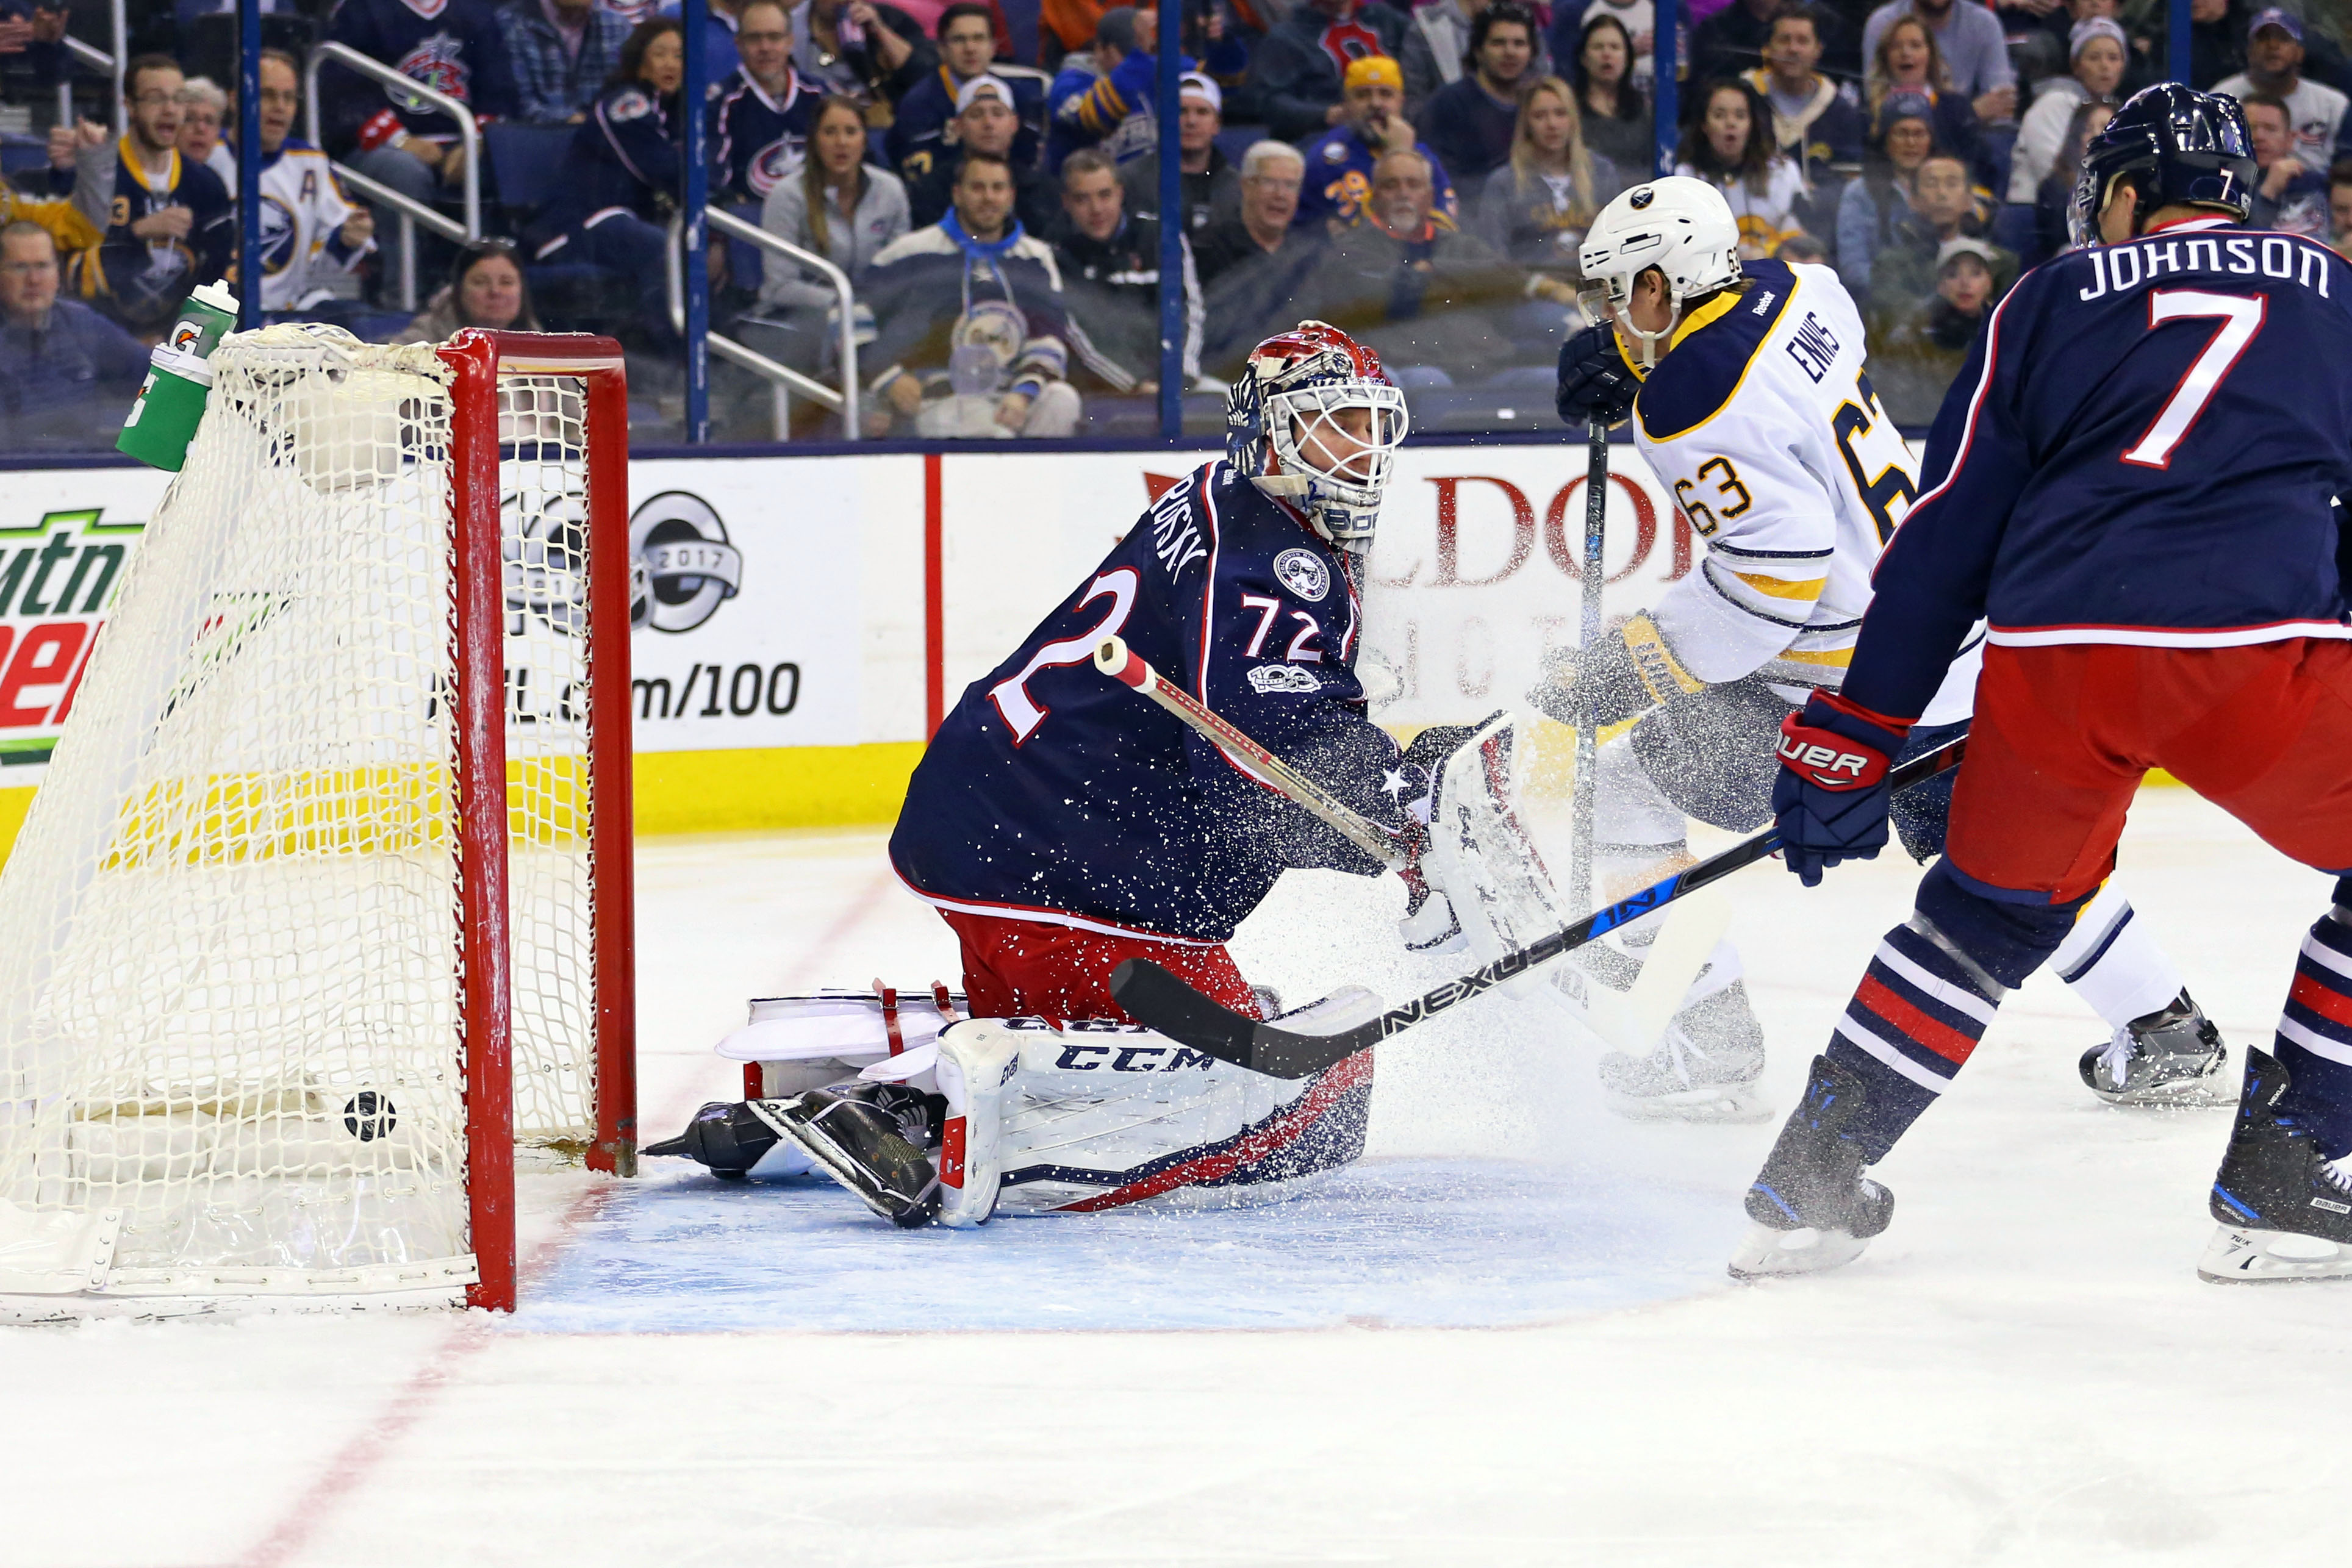 The Sabres ended Sergei Bobrovsky's shutout streak at 182:50 when Evan Rodrigues scored in the firsrt period. (USA TODAY Sports